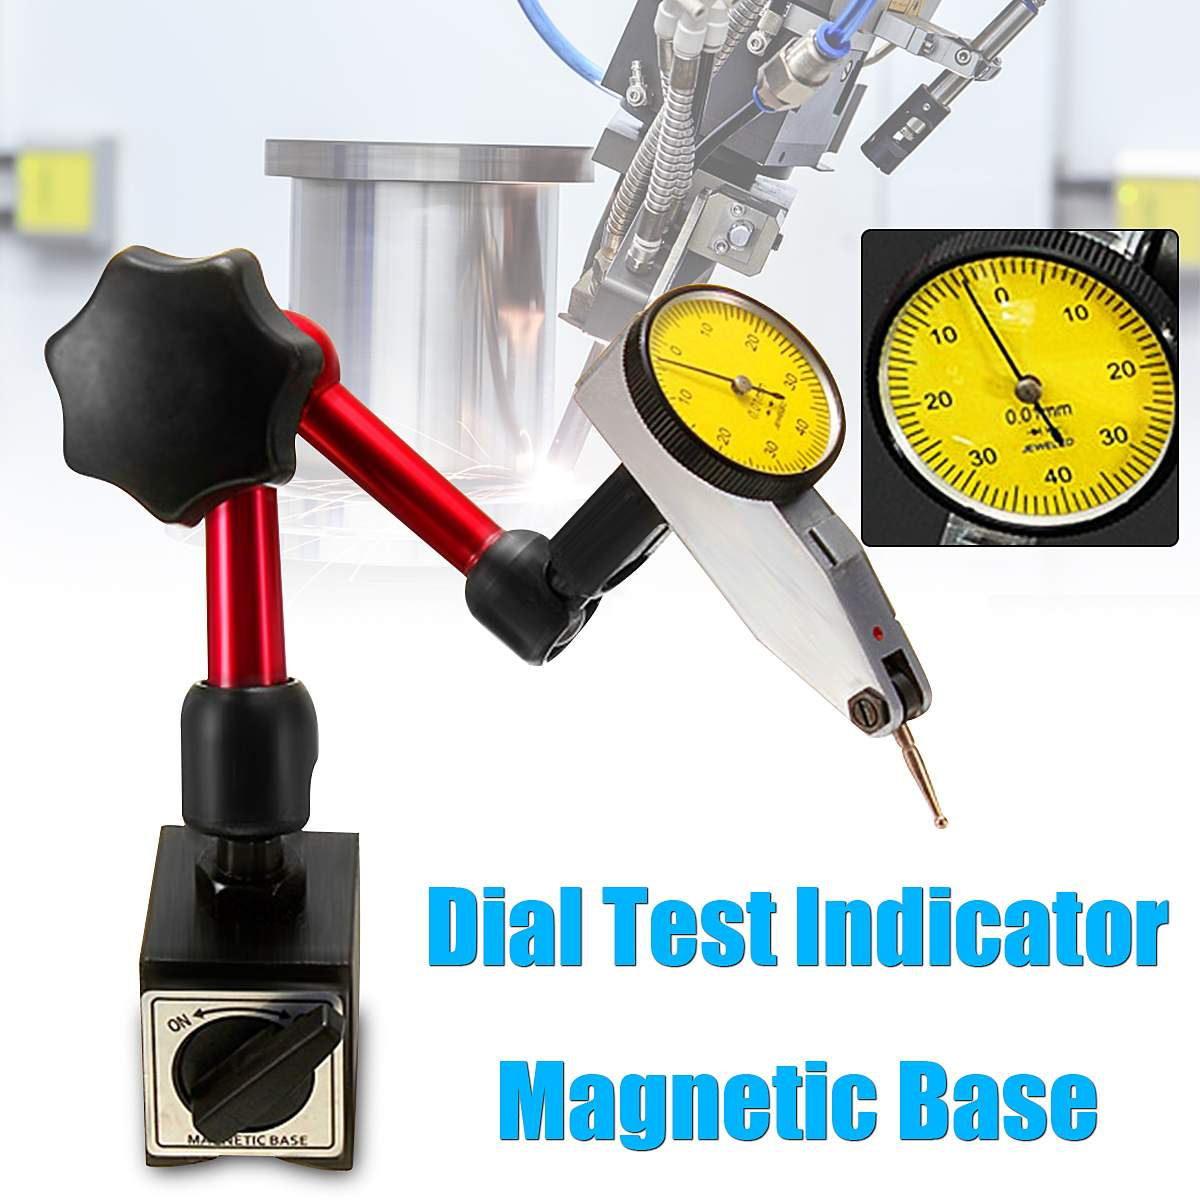 Mini Universal Flexible Dial Test Indicator Magnetic Base Holder Stand Magnetic Correction Gauge Stand Indicator Tool New Arriva